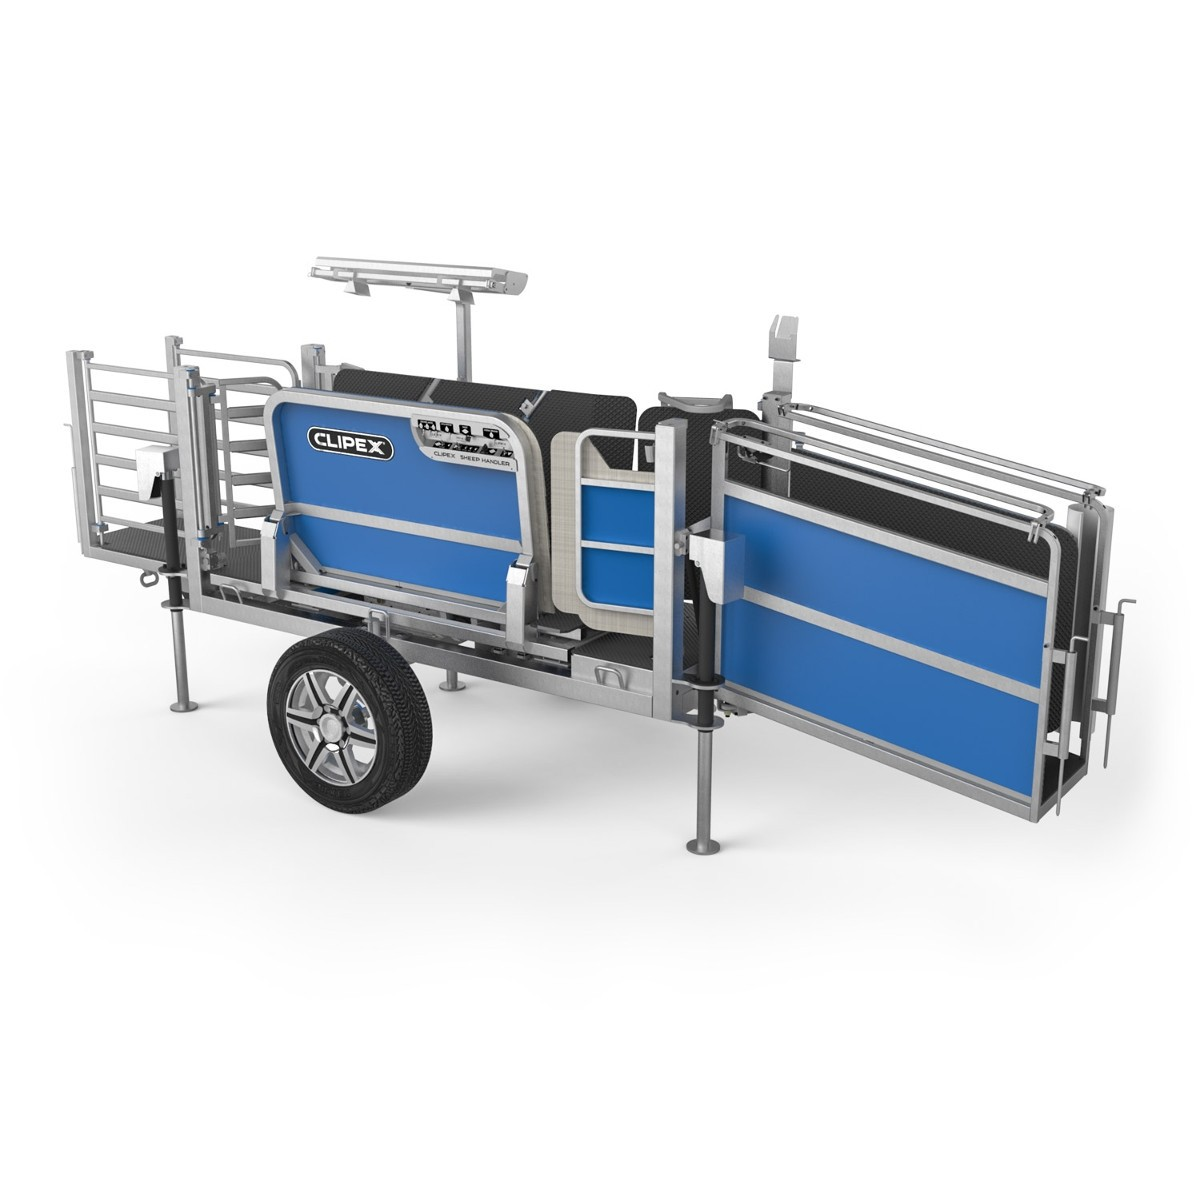 Clipex Sheep Handler Contractor Model